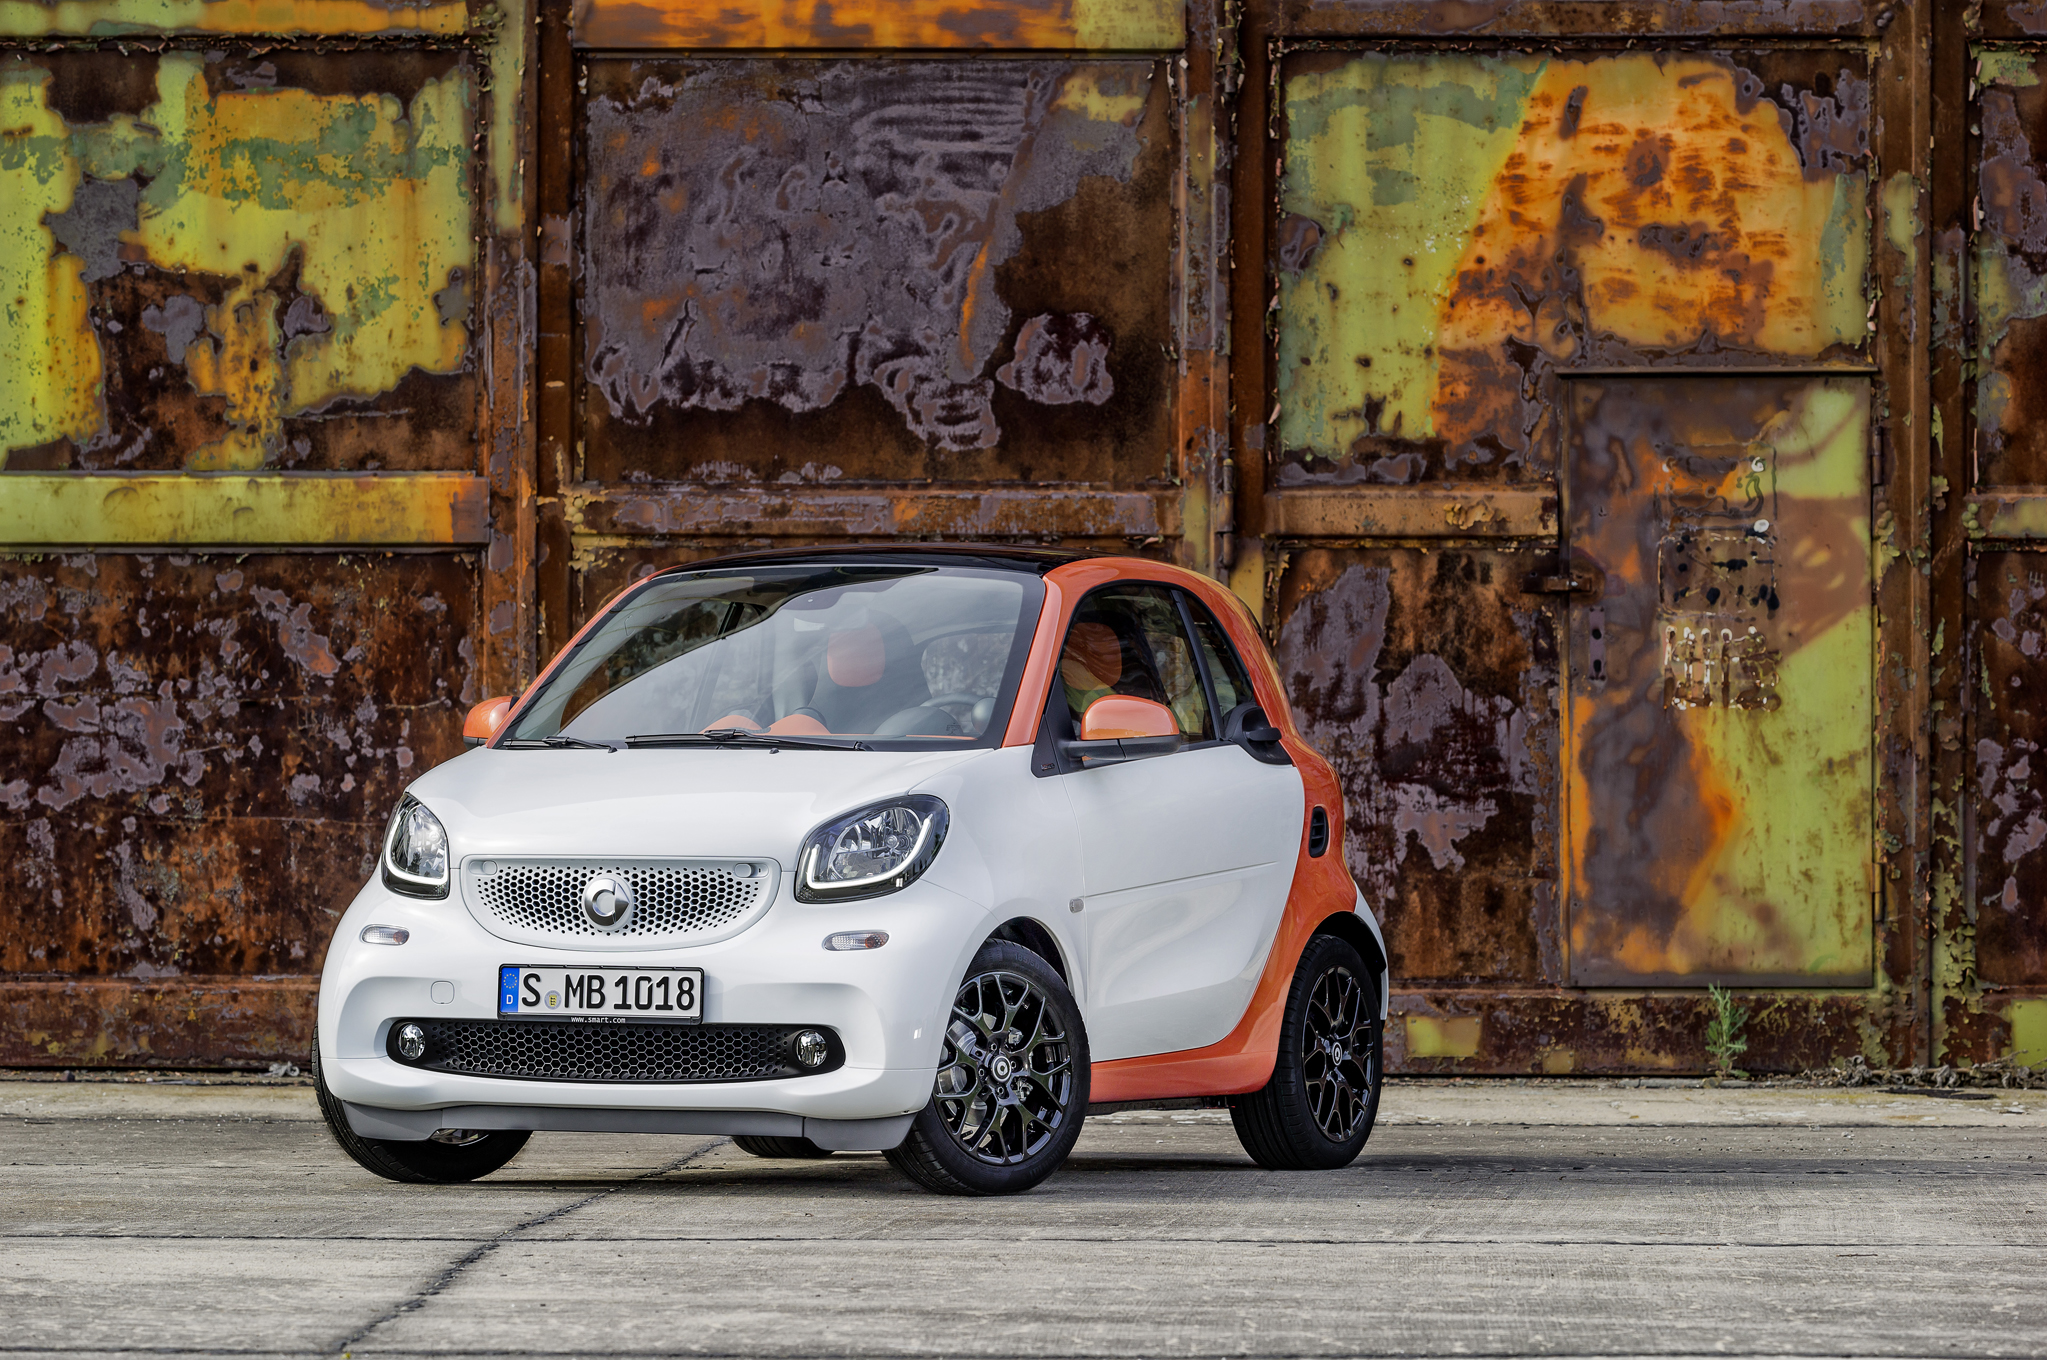 2016 Smart Fortwo Exterior Preview